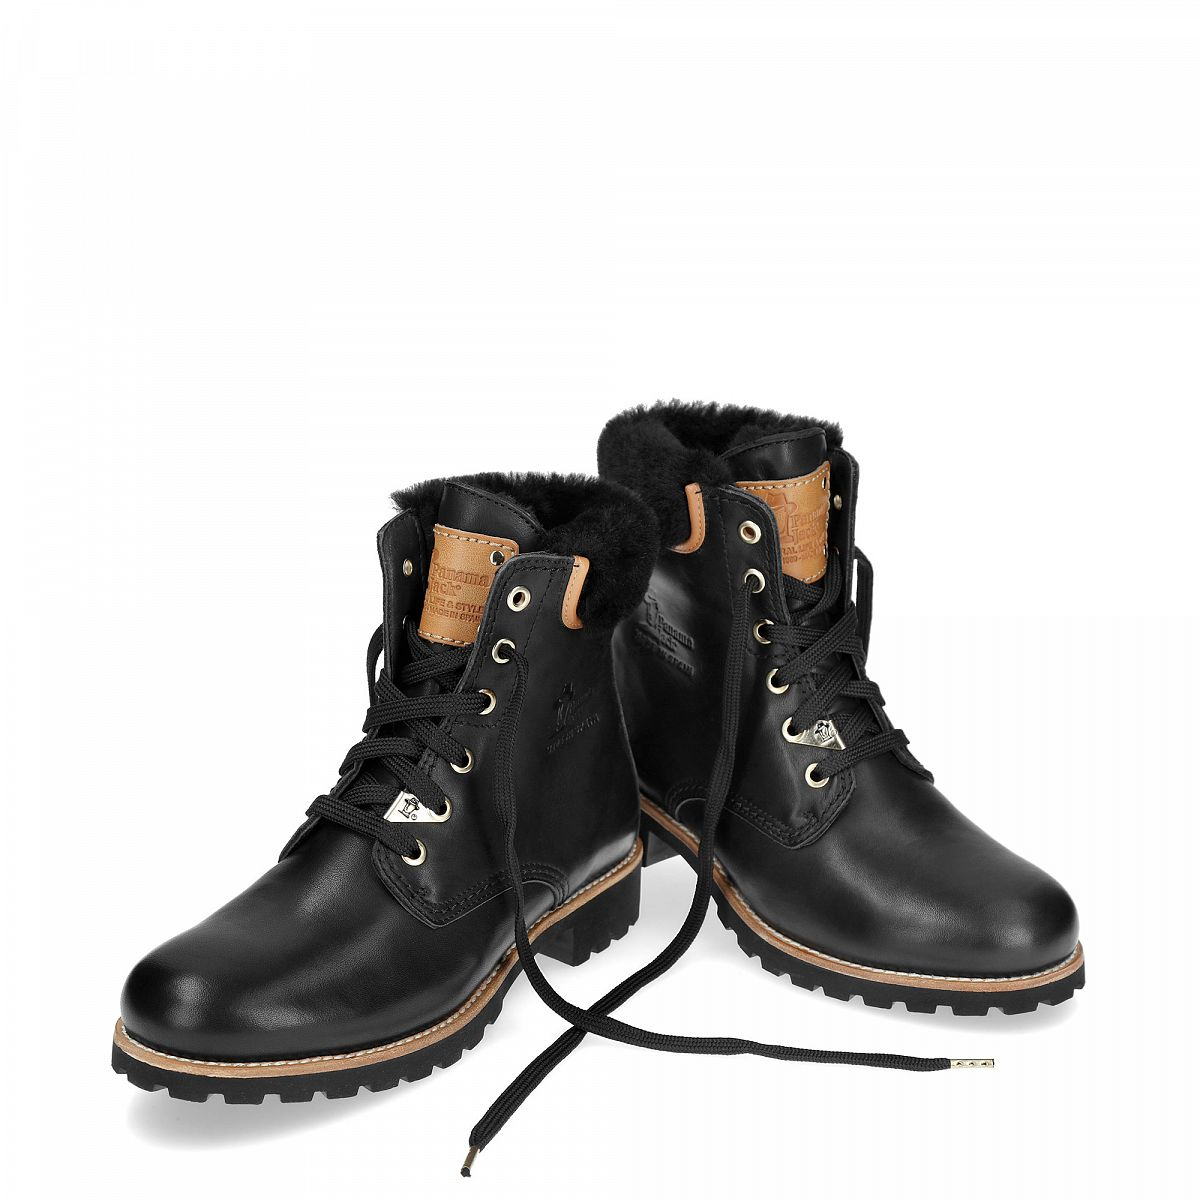 6f27f01d0f57a9 Women s boot PANAMA 03 IGLOO TRAVELLING black